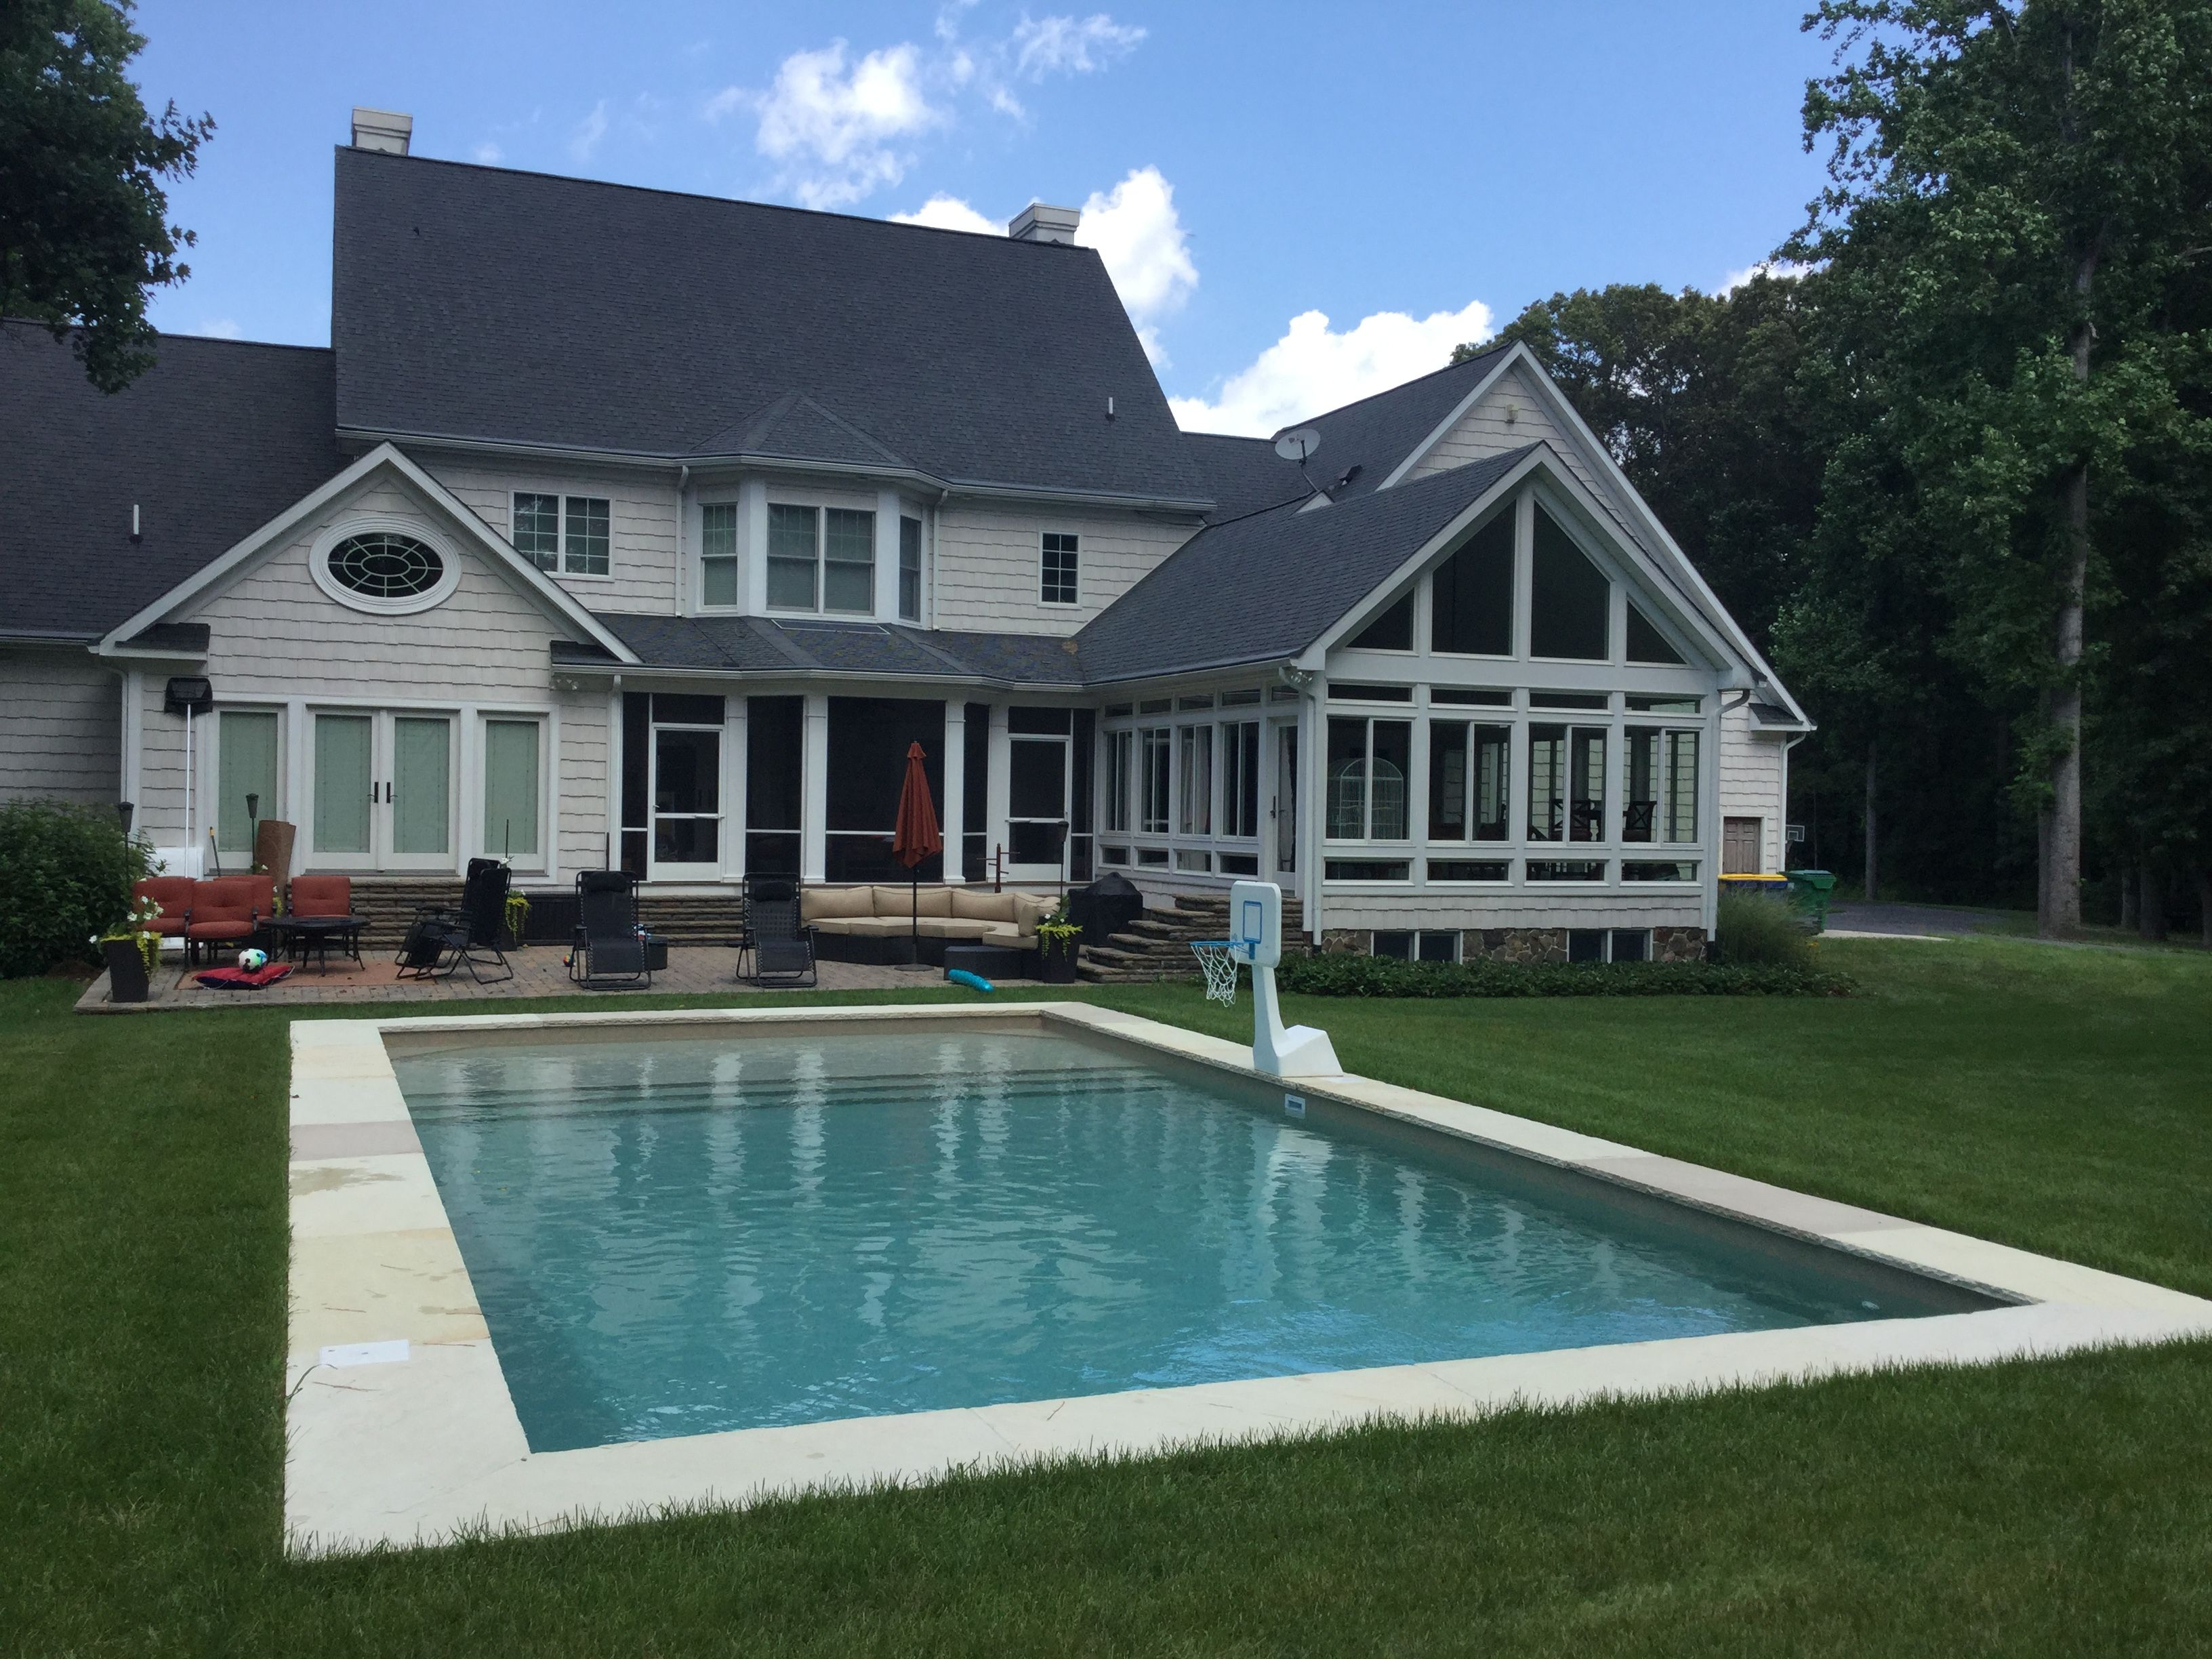 Radiant Rectangle Inground Pool With Inside Steps And Lounge Area